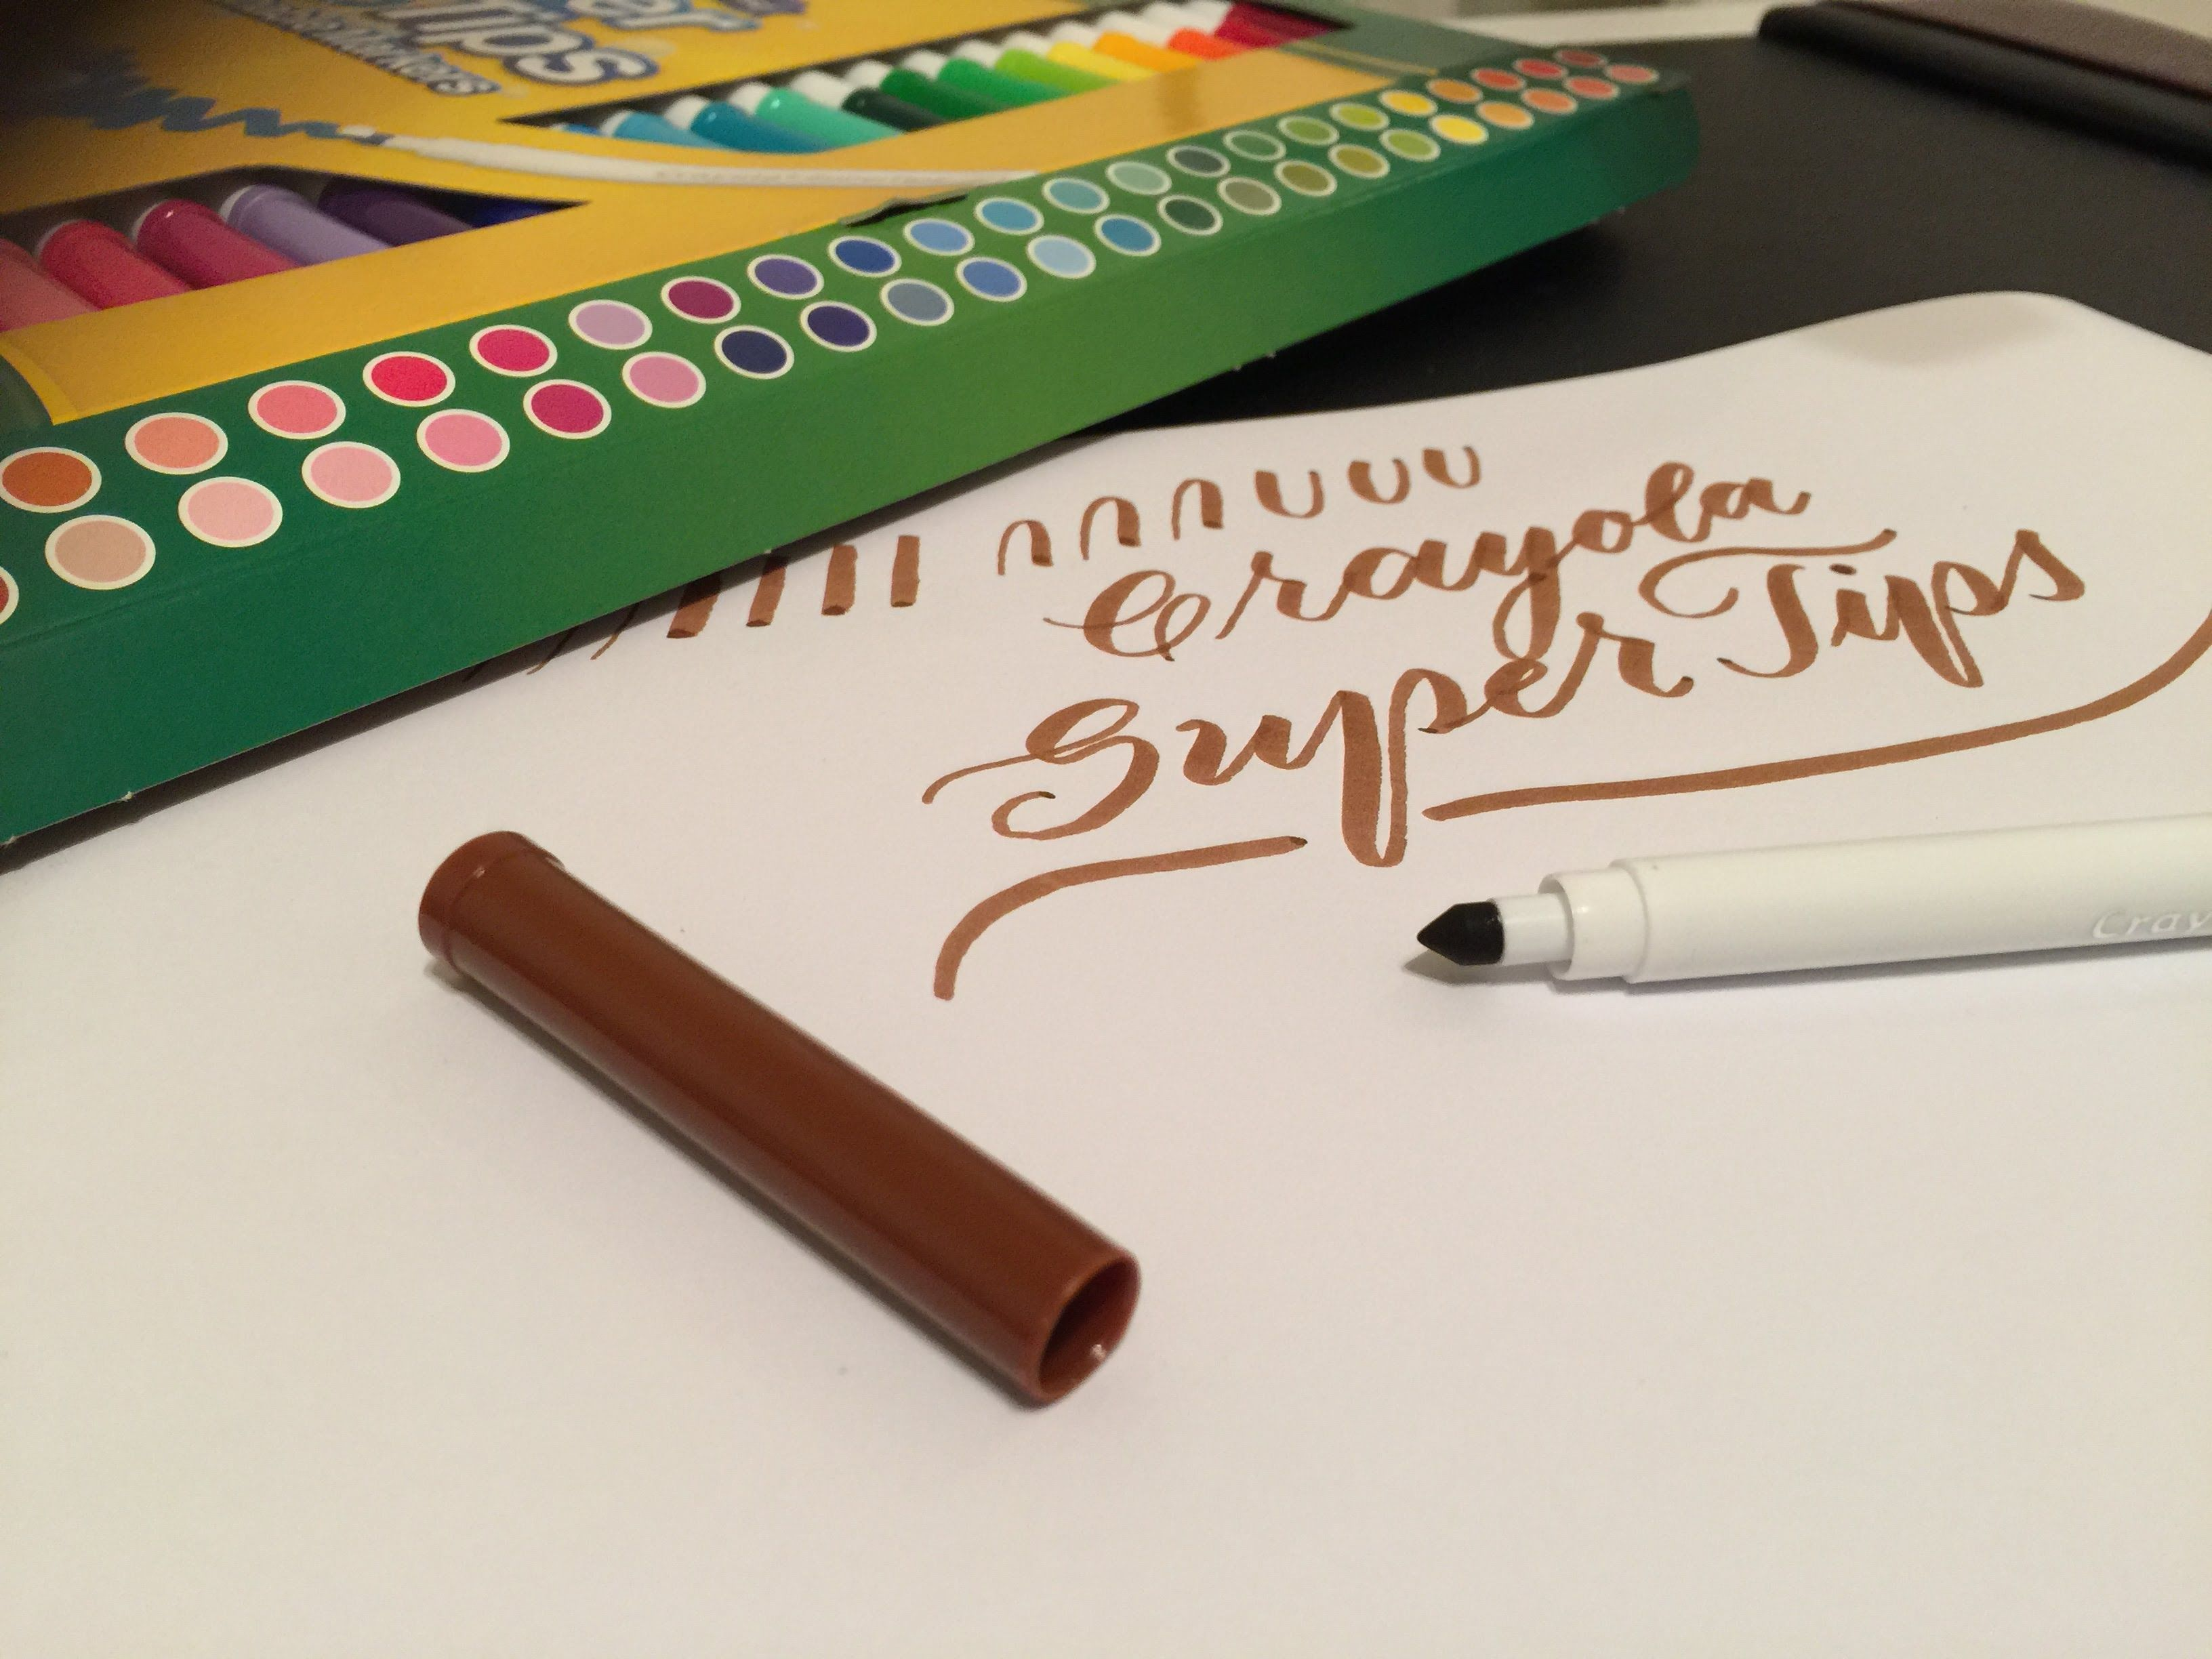 Using crayola super tips markers for modern calligraphy writing